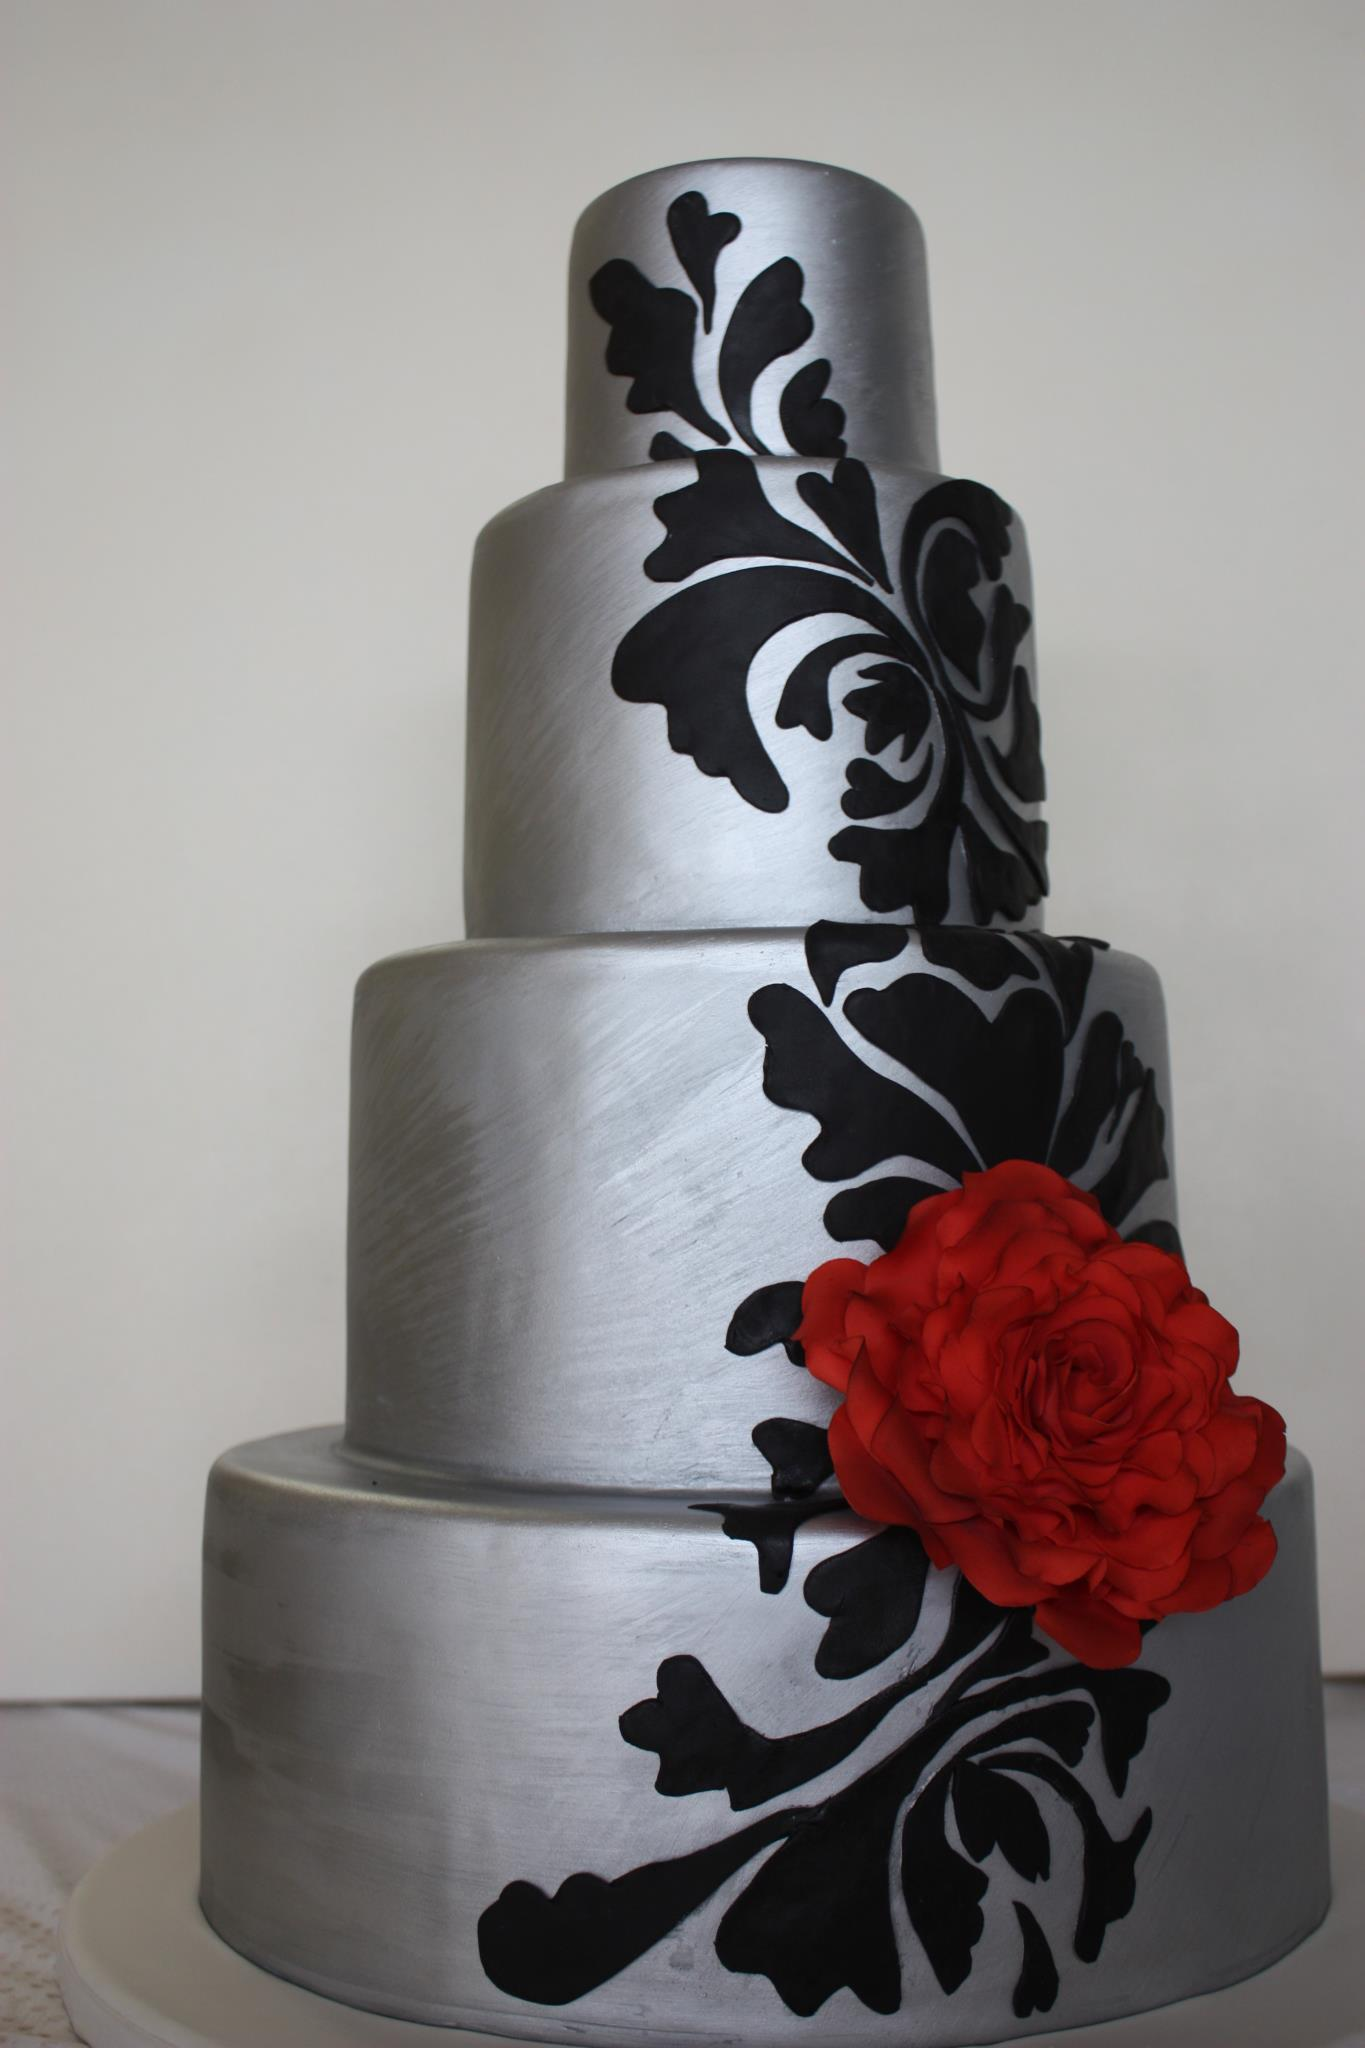 Silver Cake with Black Stenciling